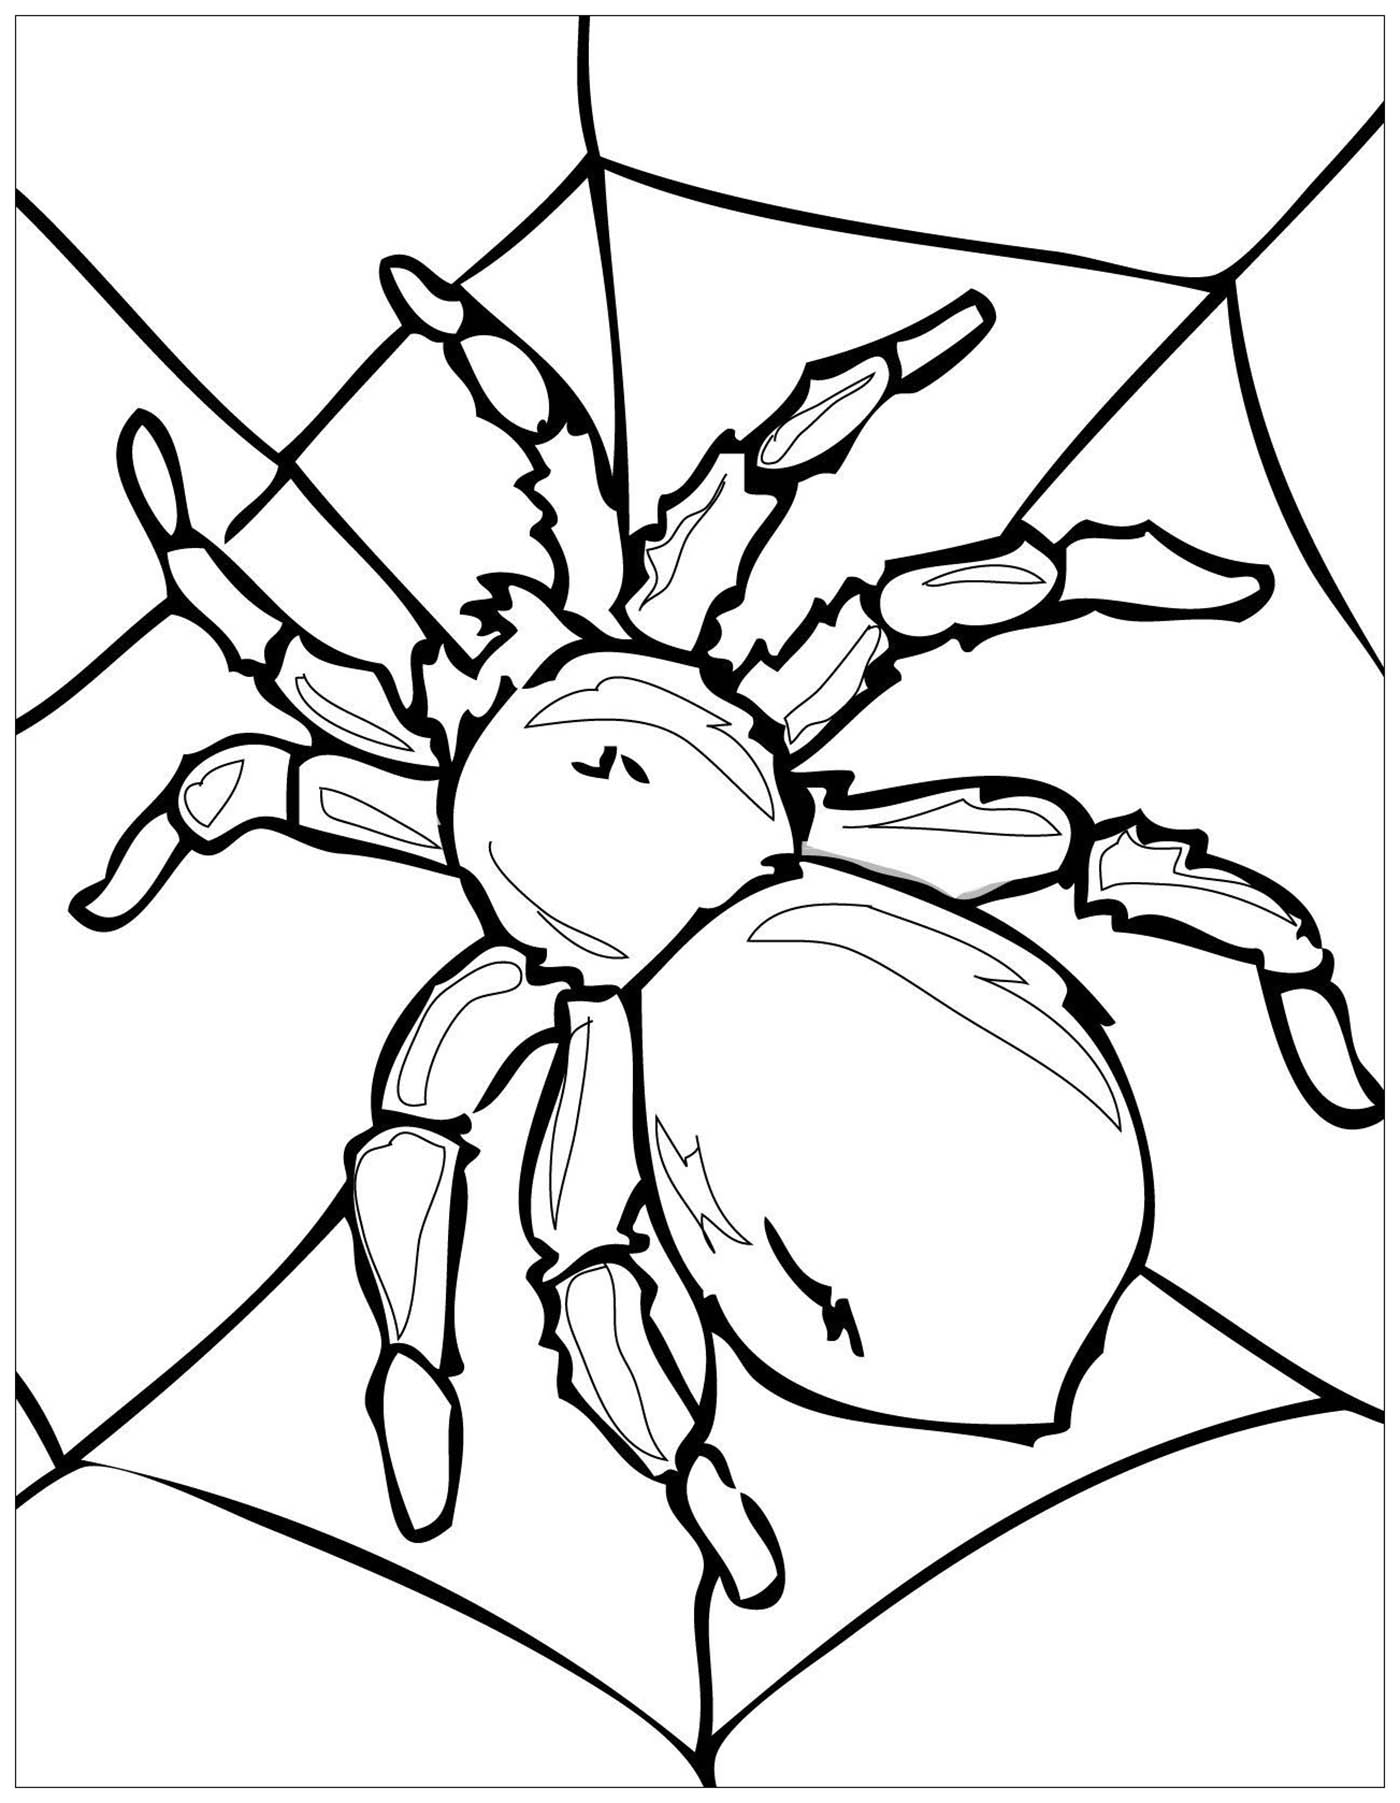 bug pictures to color insects for kids insects kids coloring pages to color pictures bug